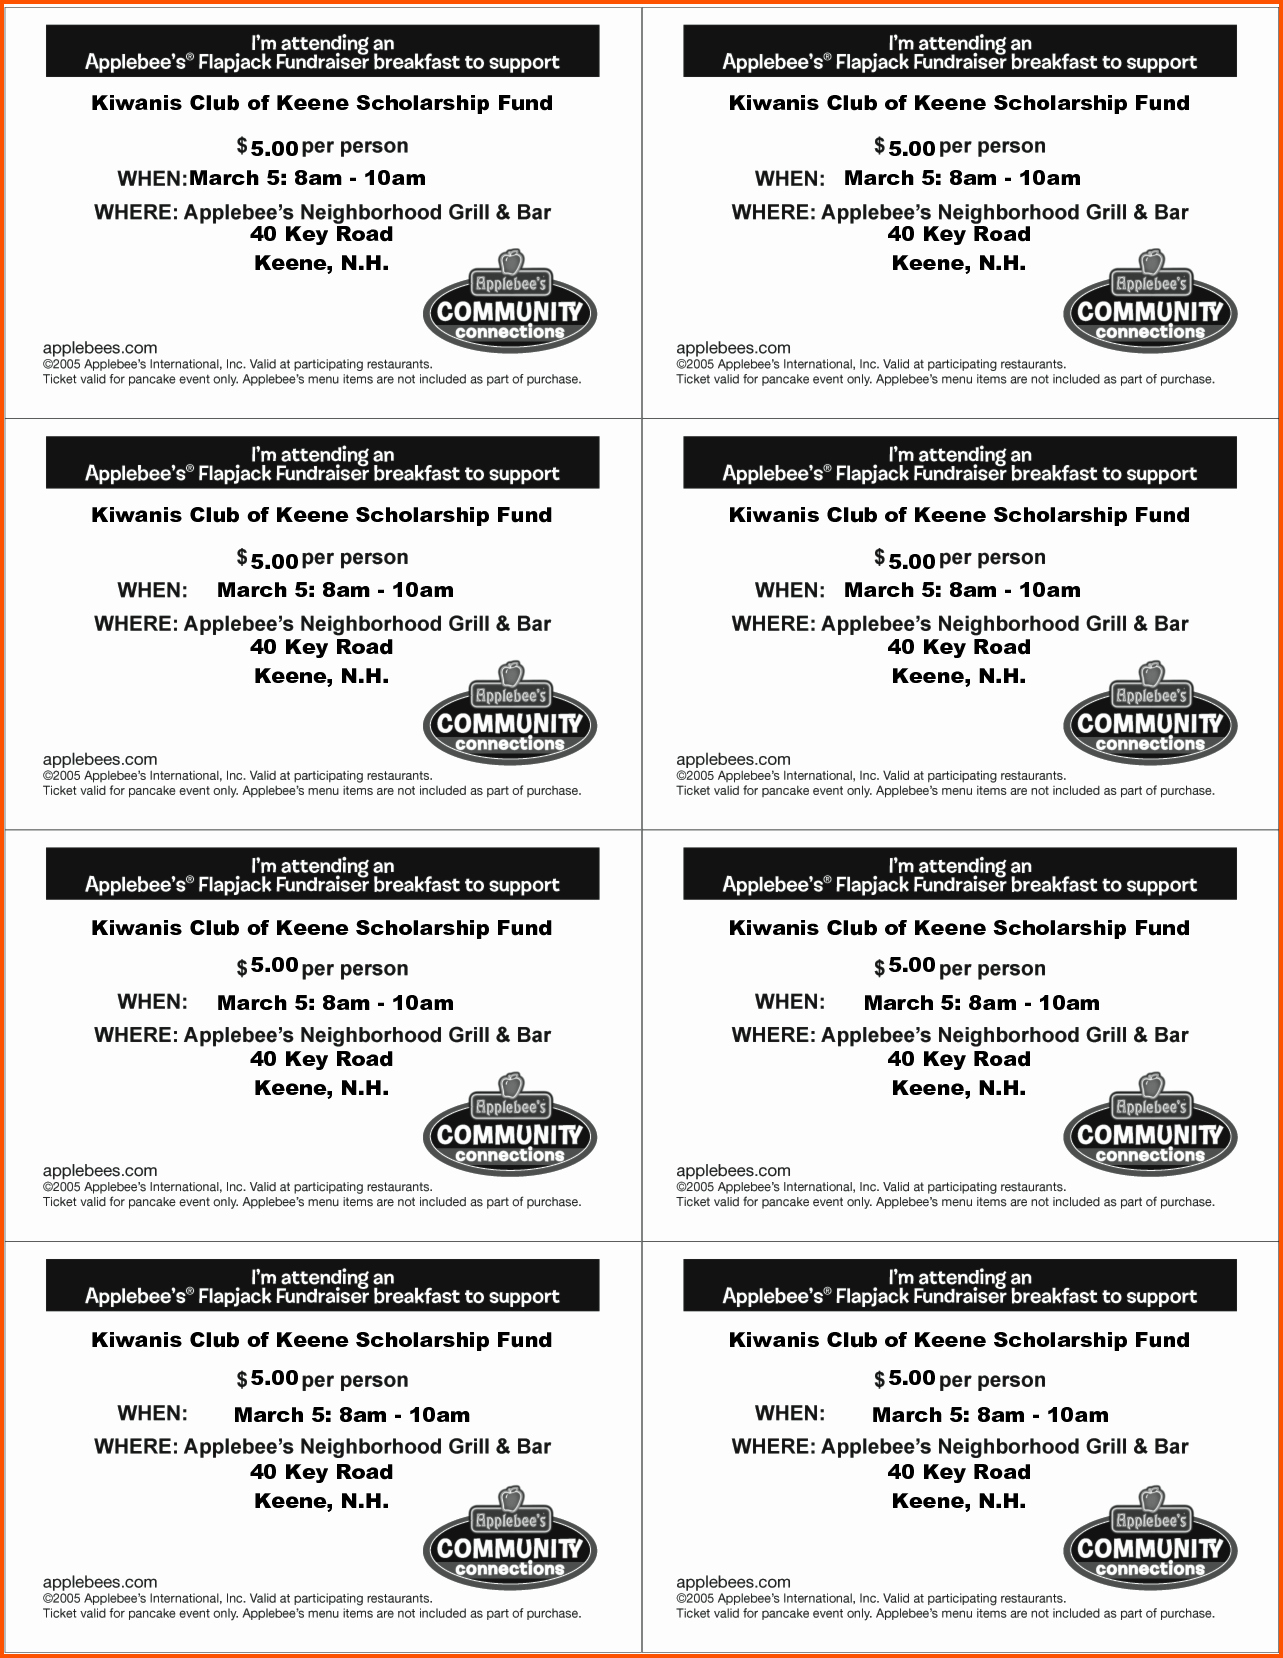 How to Make Concert Tickets Lovely Printable Tickets Template thebridgesummit Best solutions